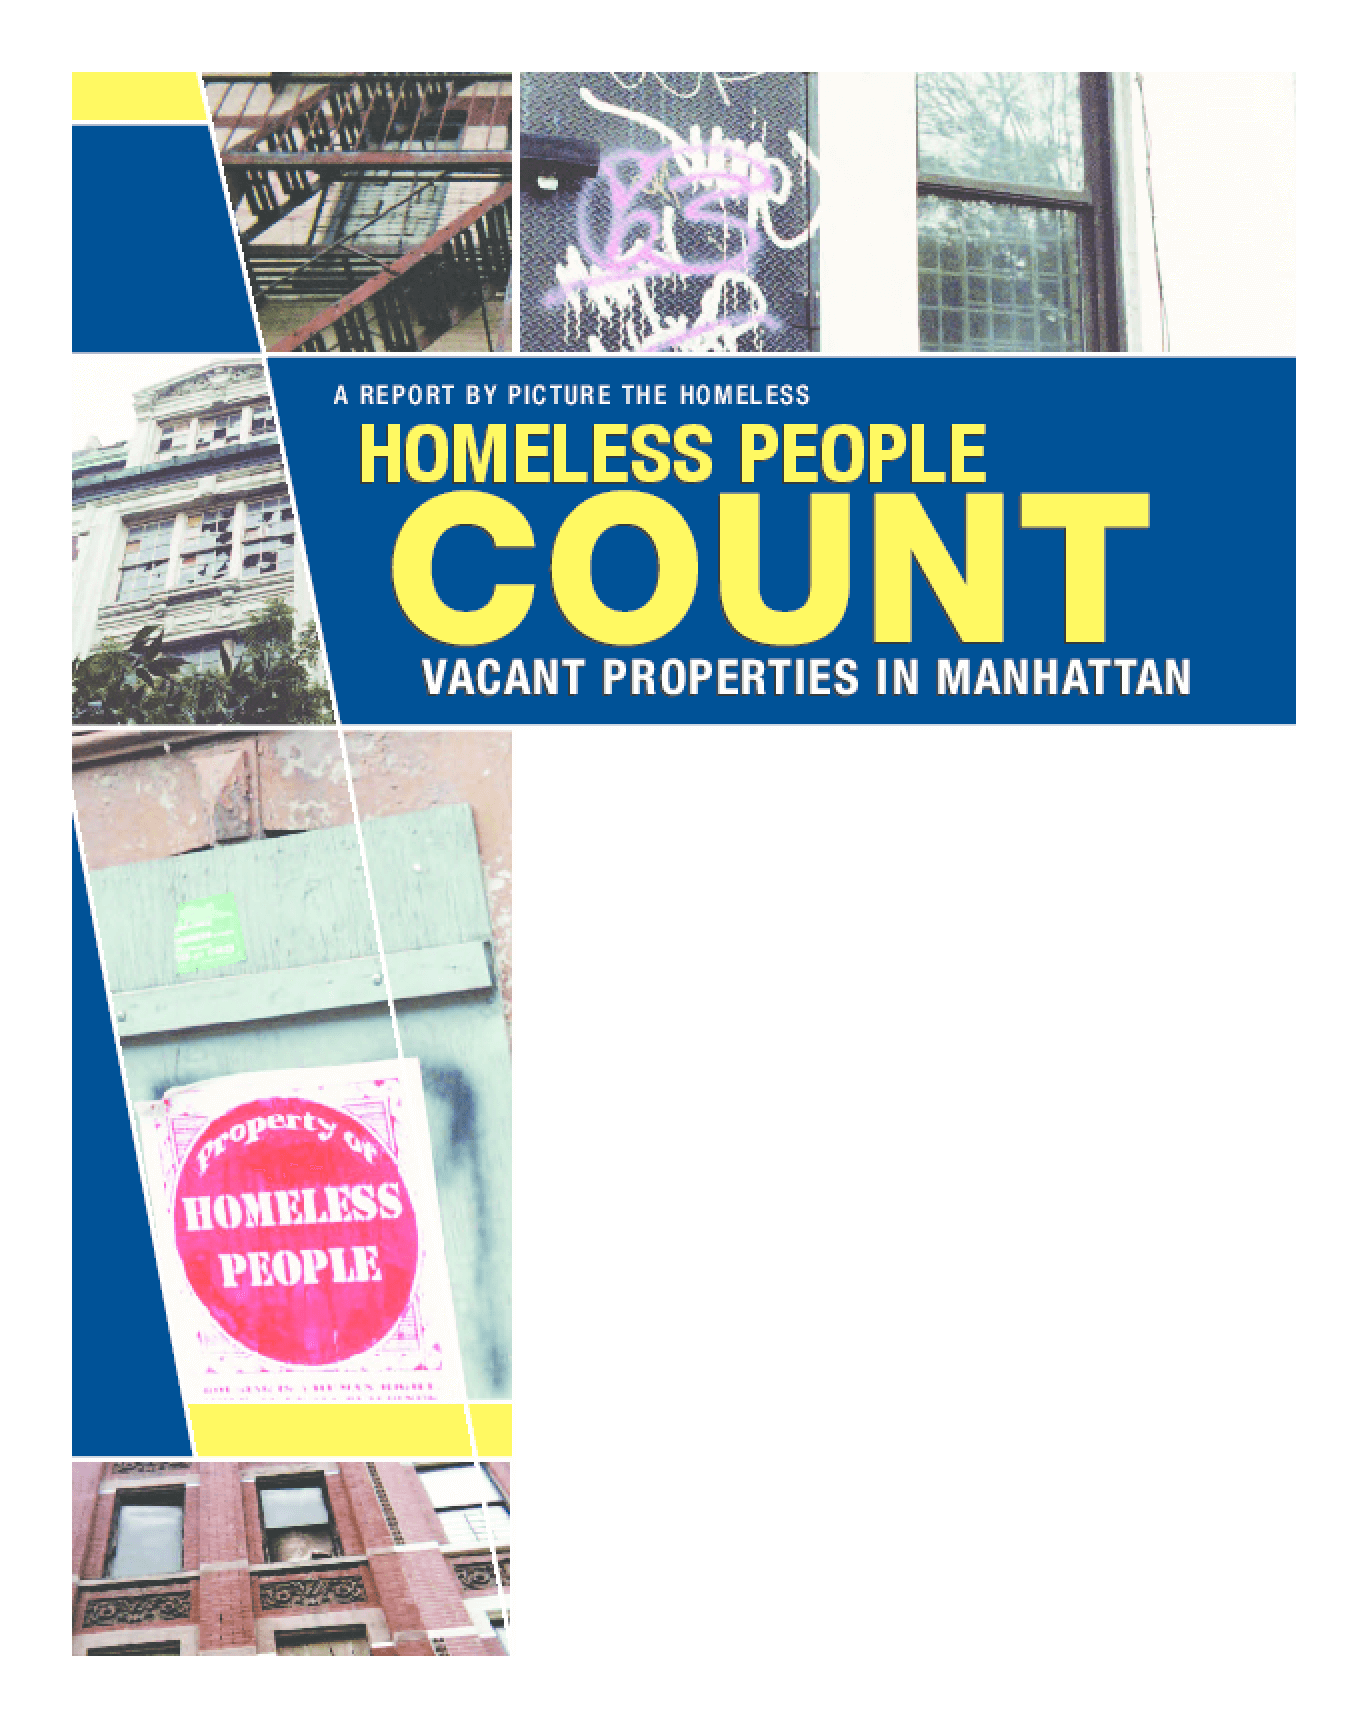 Homeless People Count: Vacant Properties in Manhattan